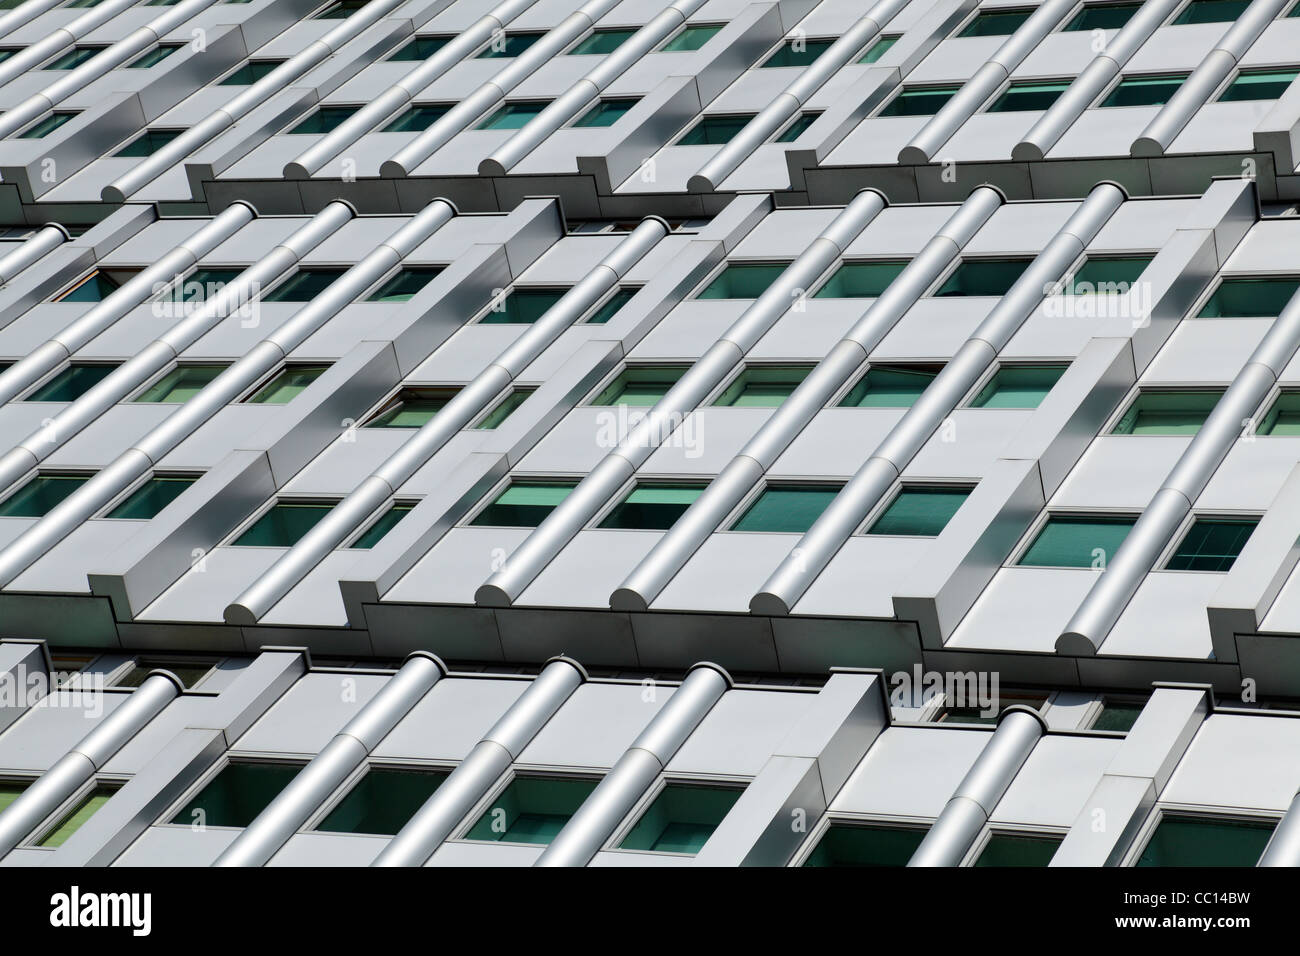 The facade of The Pinnacle Building Residential Apartments on Bothwell Street Glasgow Scotland UK - Stock Image